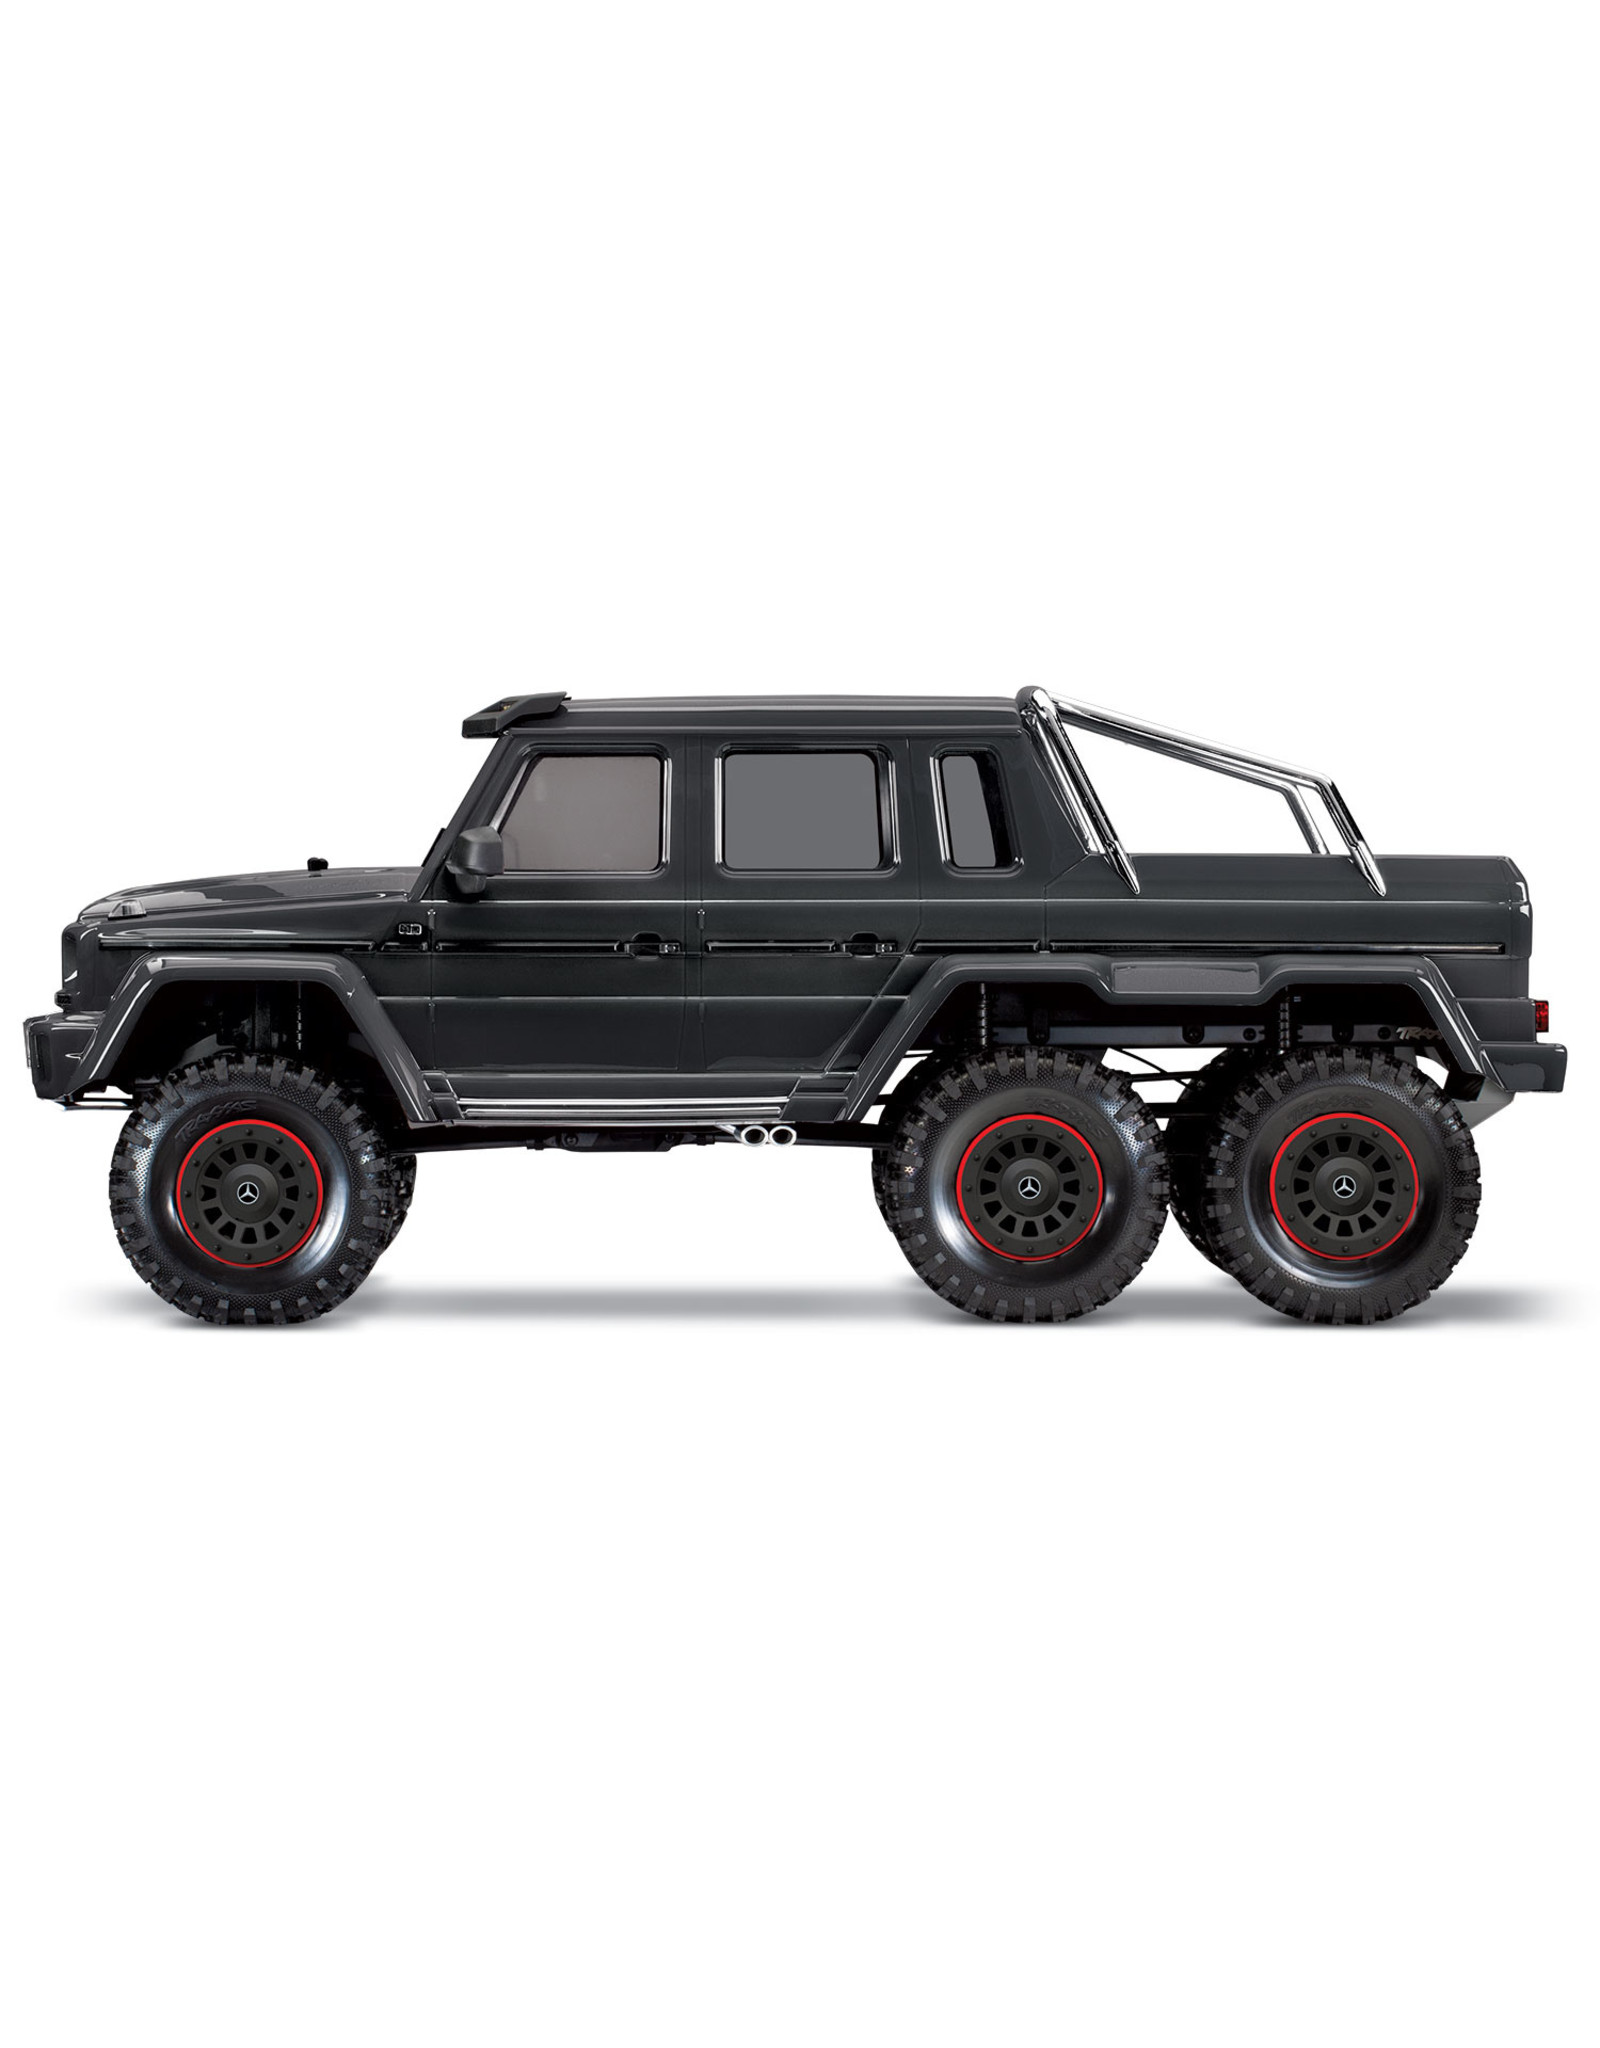 Traxxas 1/10 Mercedes-Benz G 63 AMG 6x6 RTR Scale and Trail Crawler - Silver